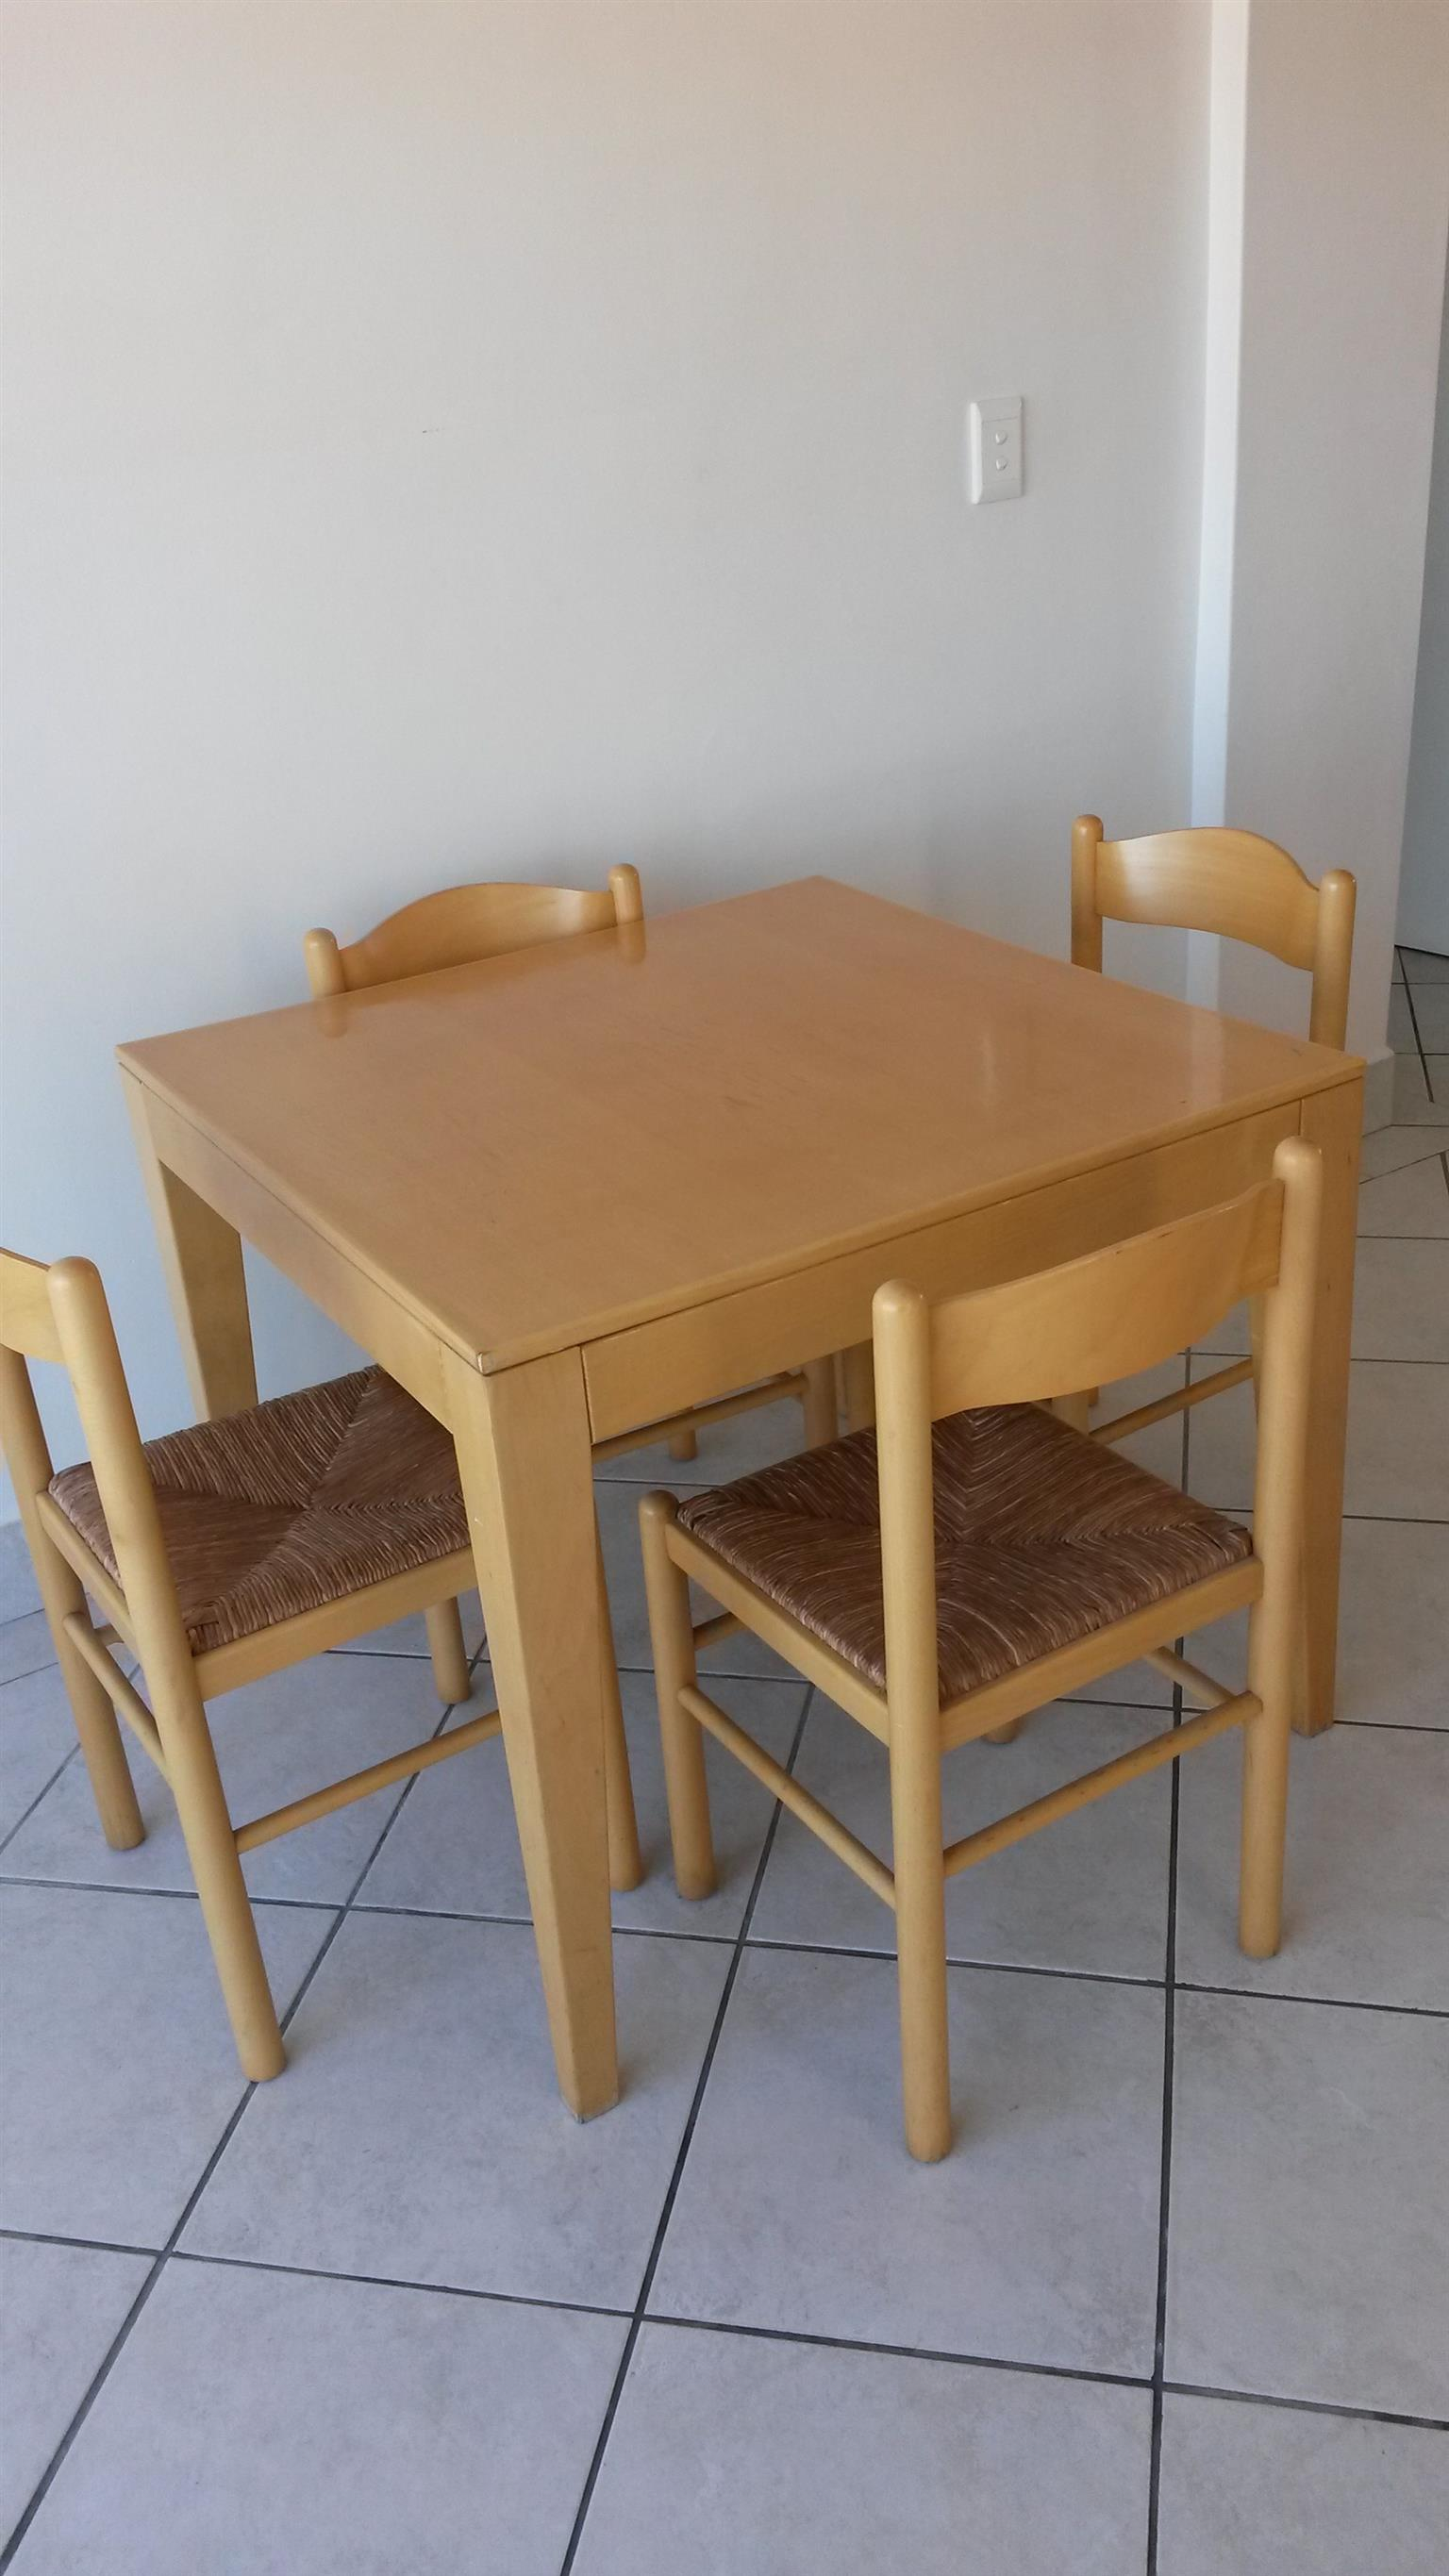 Beech wood dining table and chairs